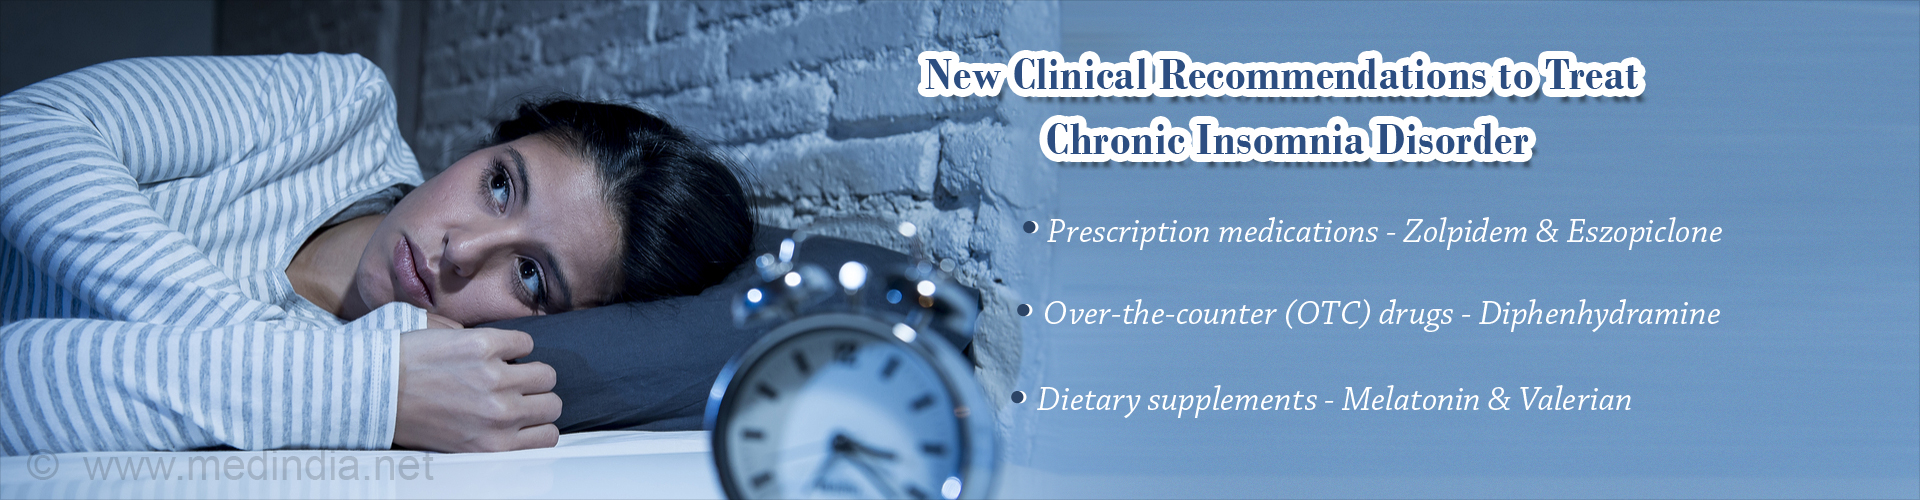 New Guidelines for Specific Insomnia Drugs to Treat Chronic Insomnia Disorder